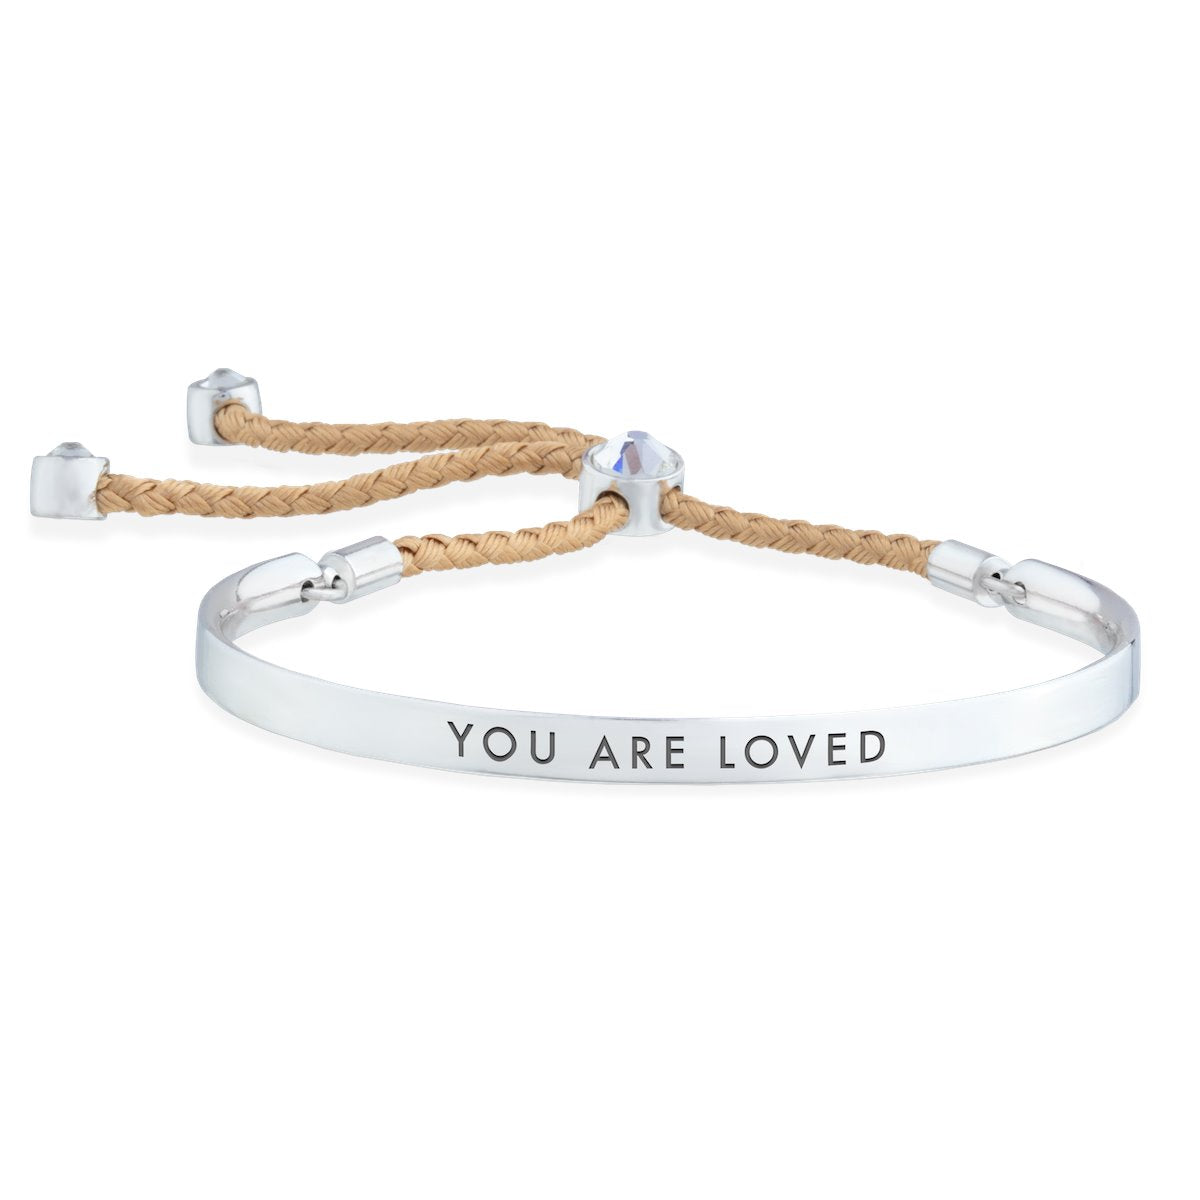 You Are Loved – Words of Empowerment Bracelet